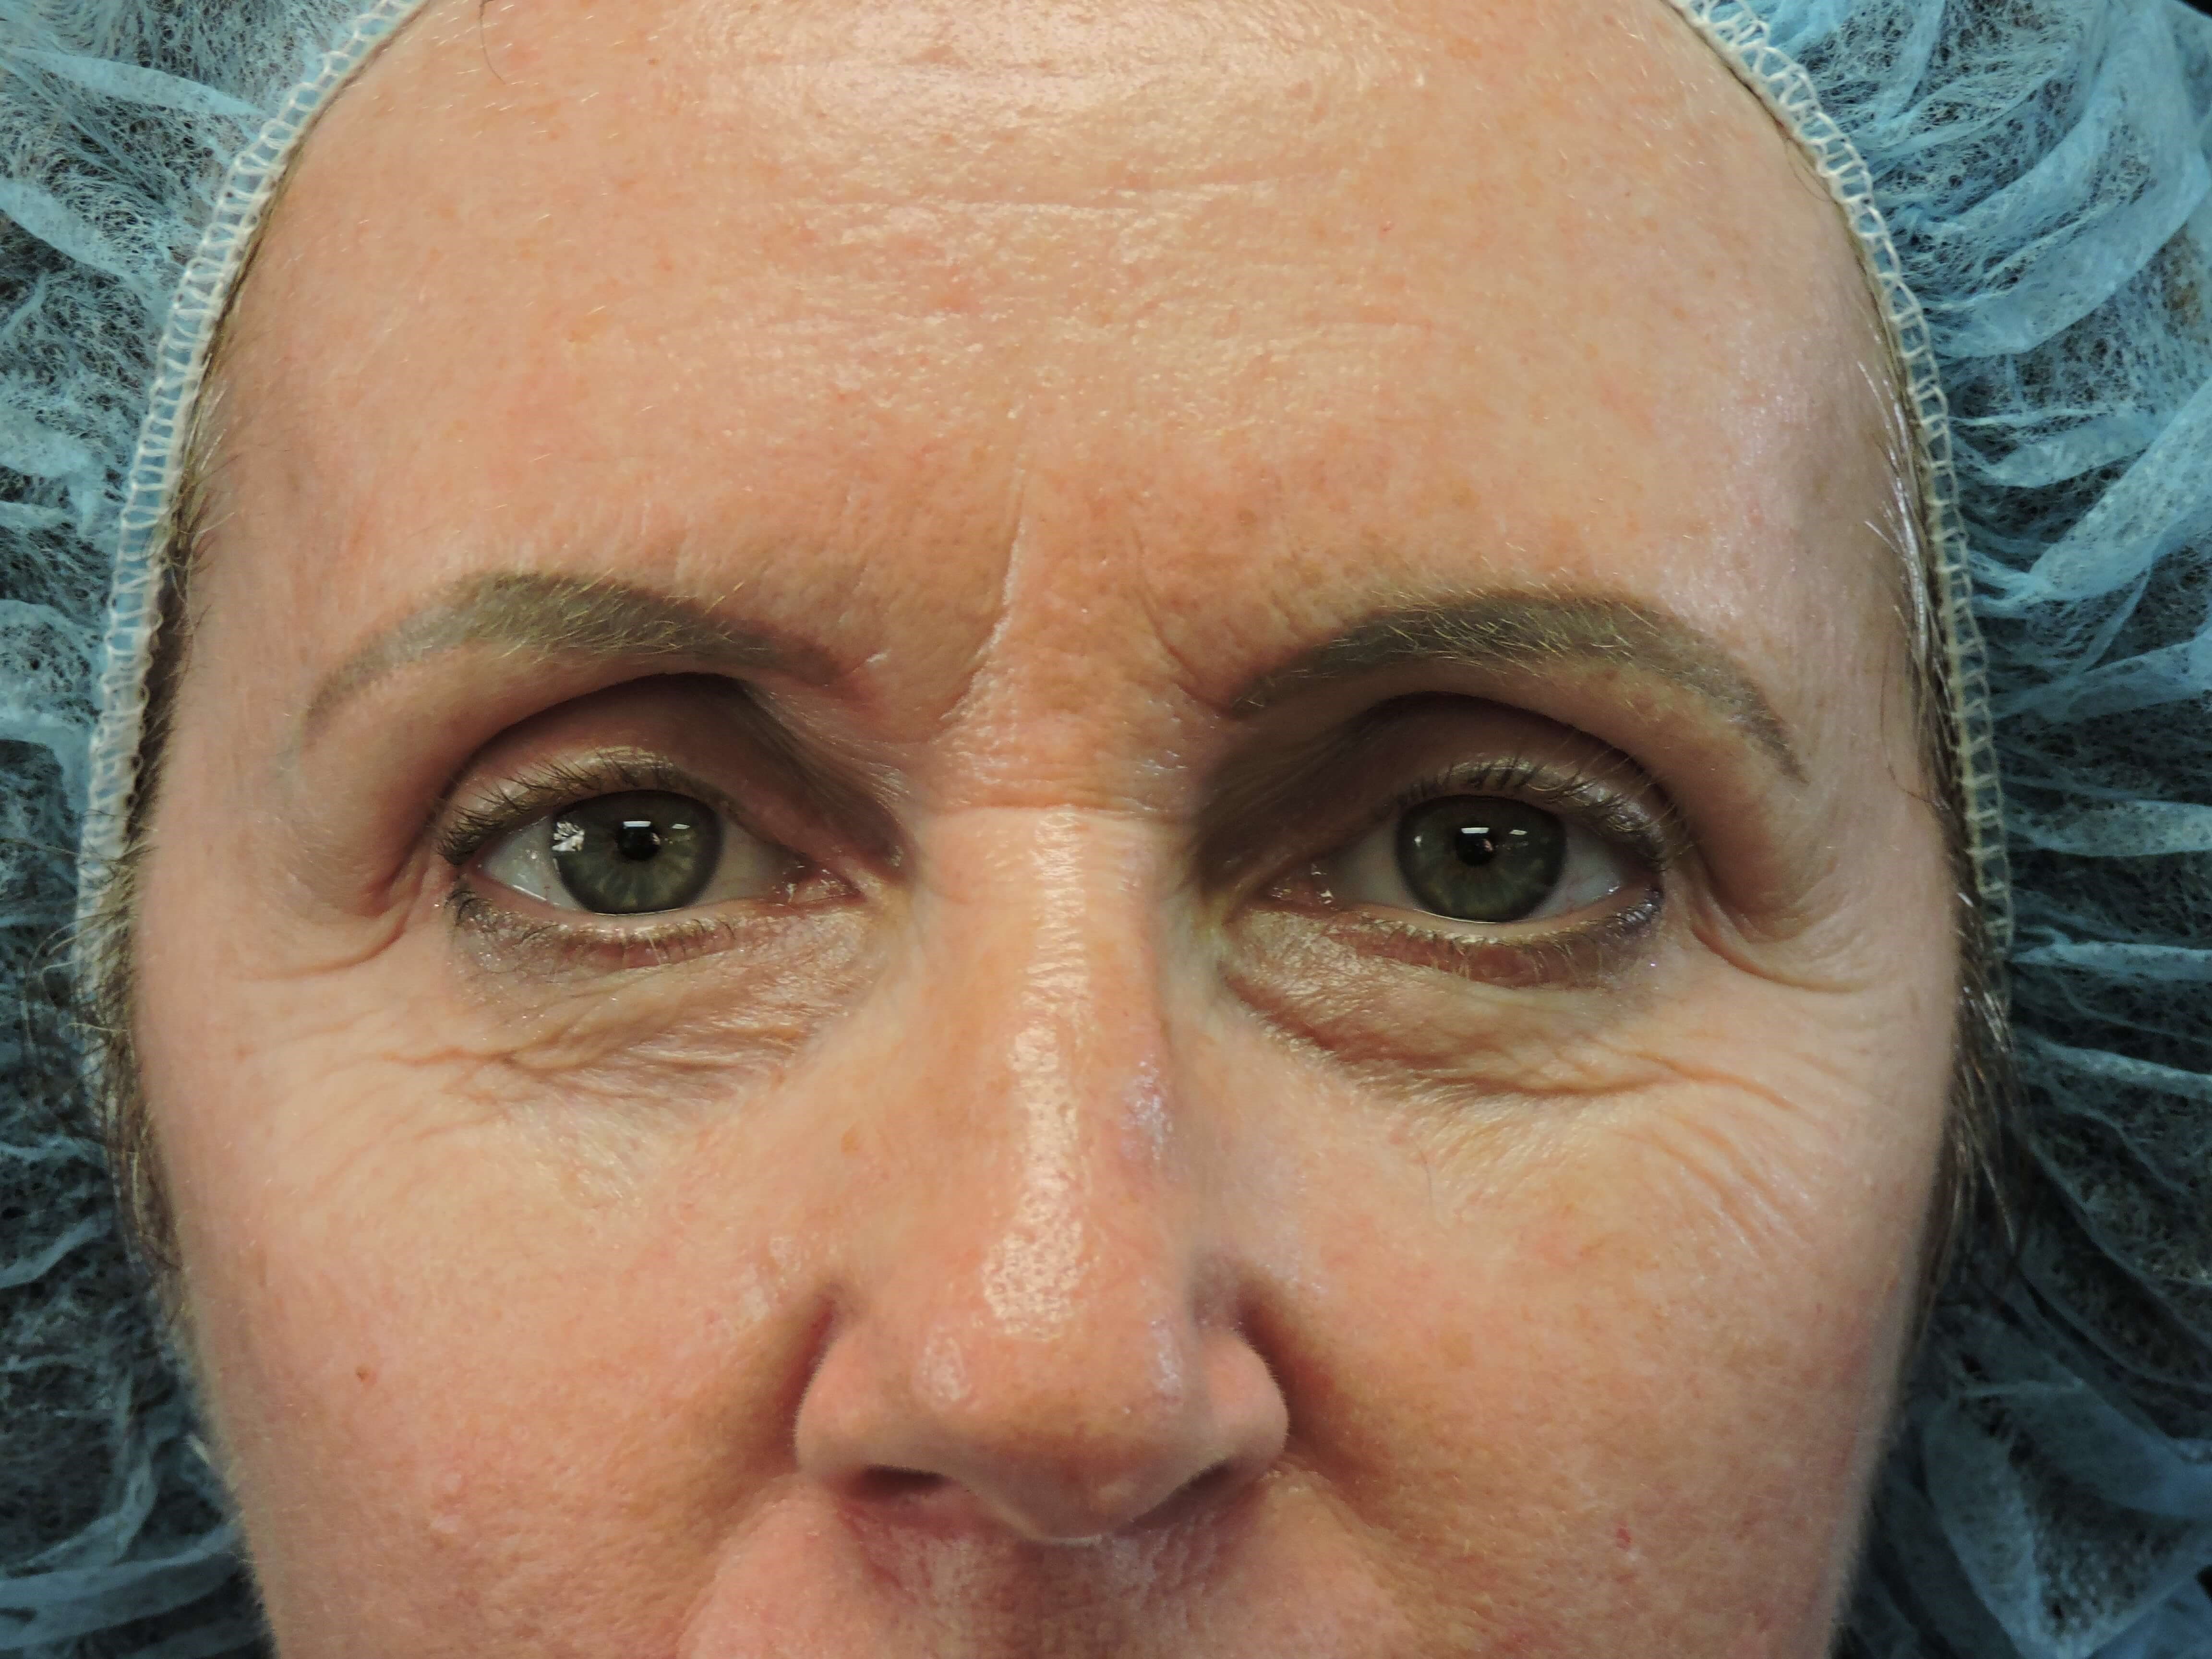 Browlift/Lower Blepharoplasty Before